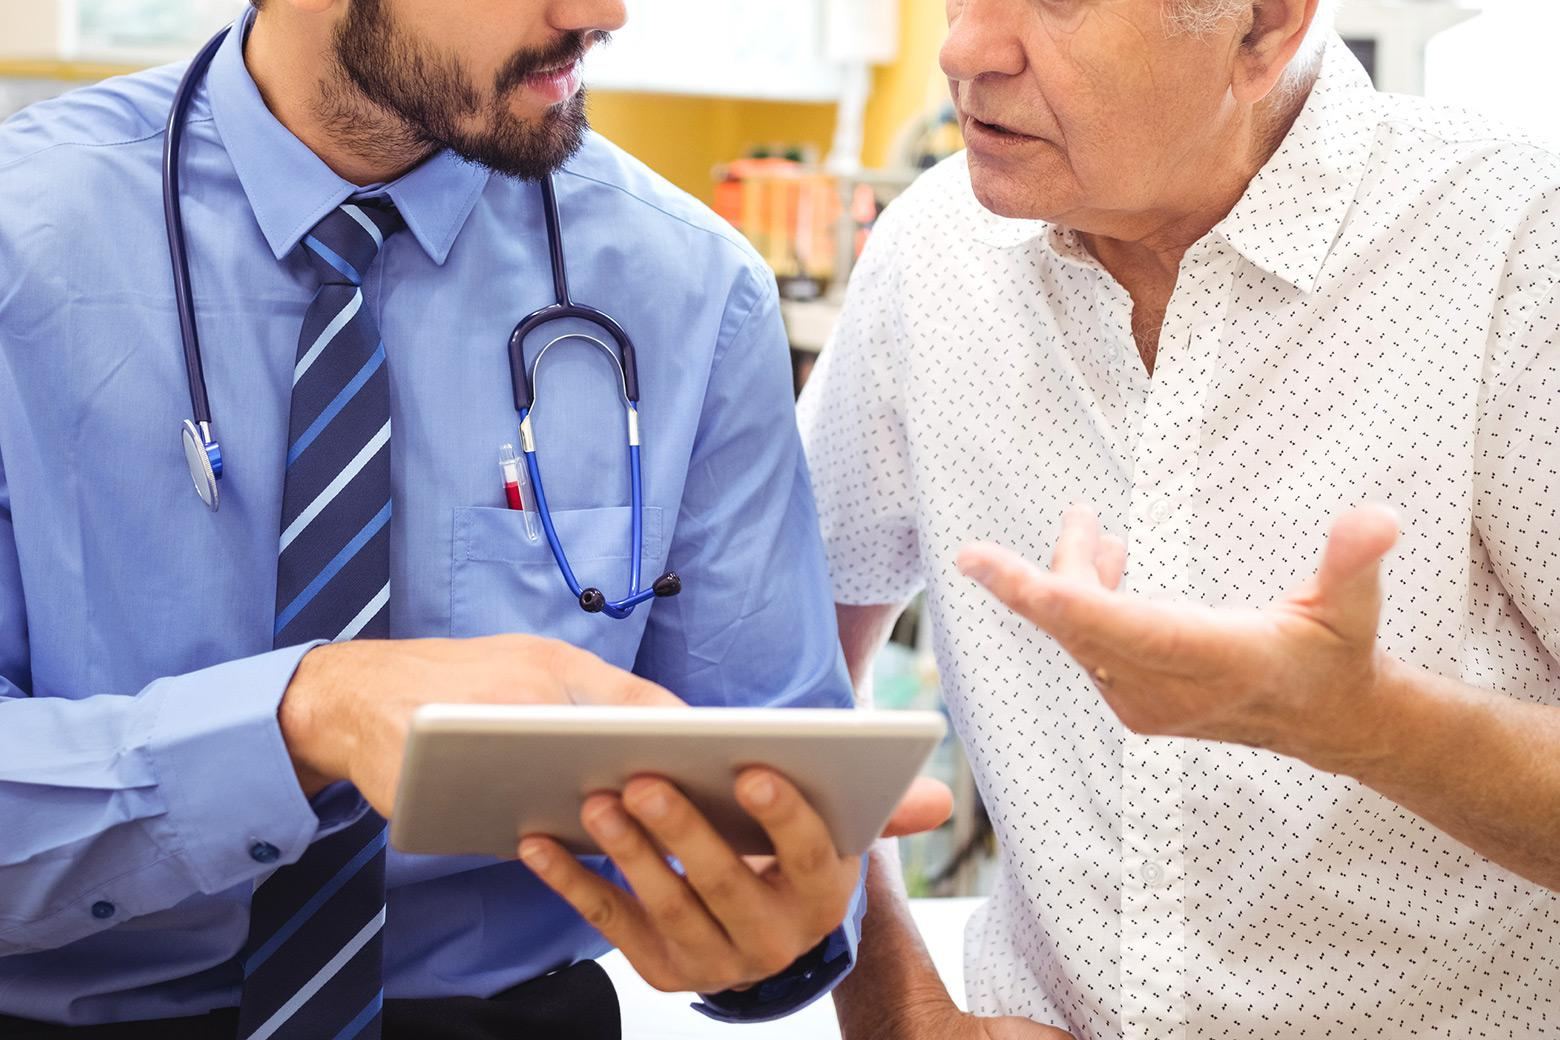 A stock photo depicts a doctor assessing a patient's needs.